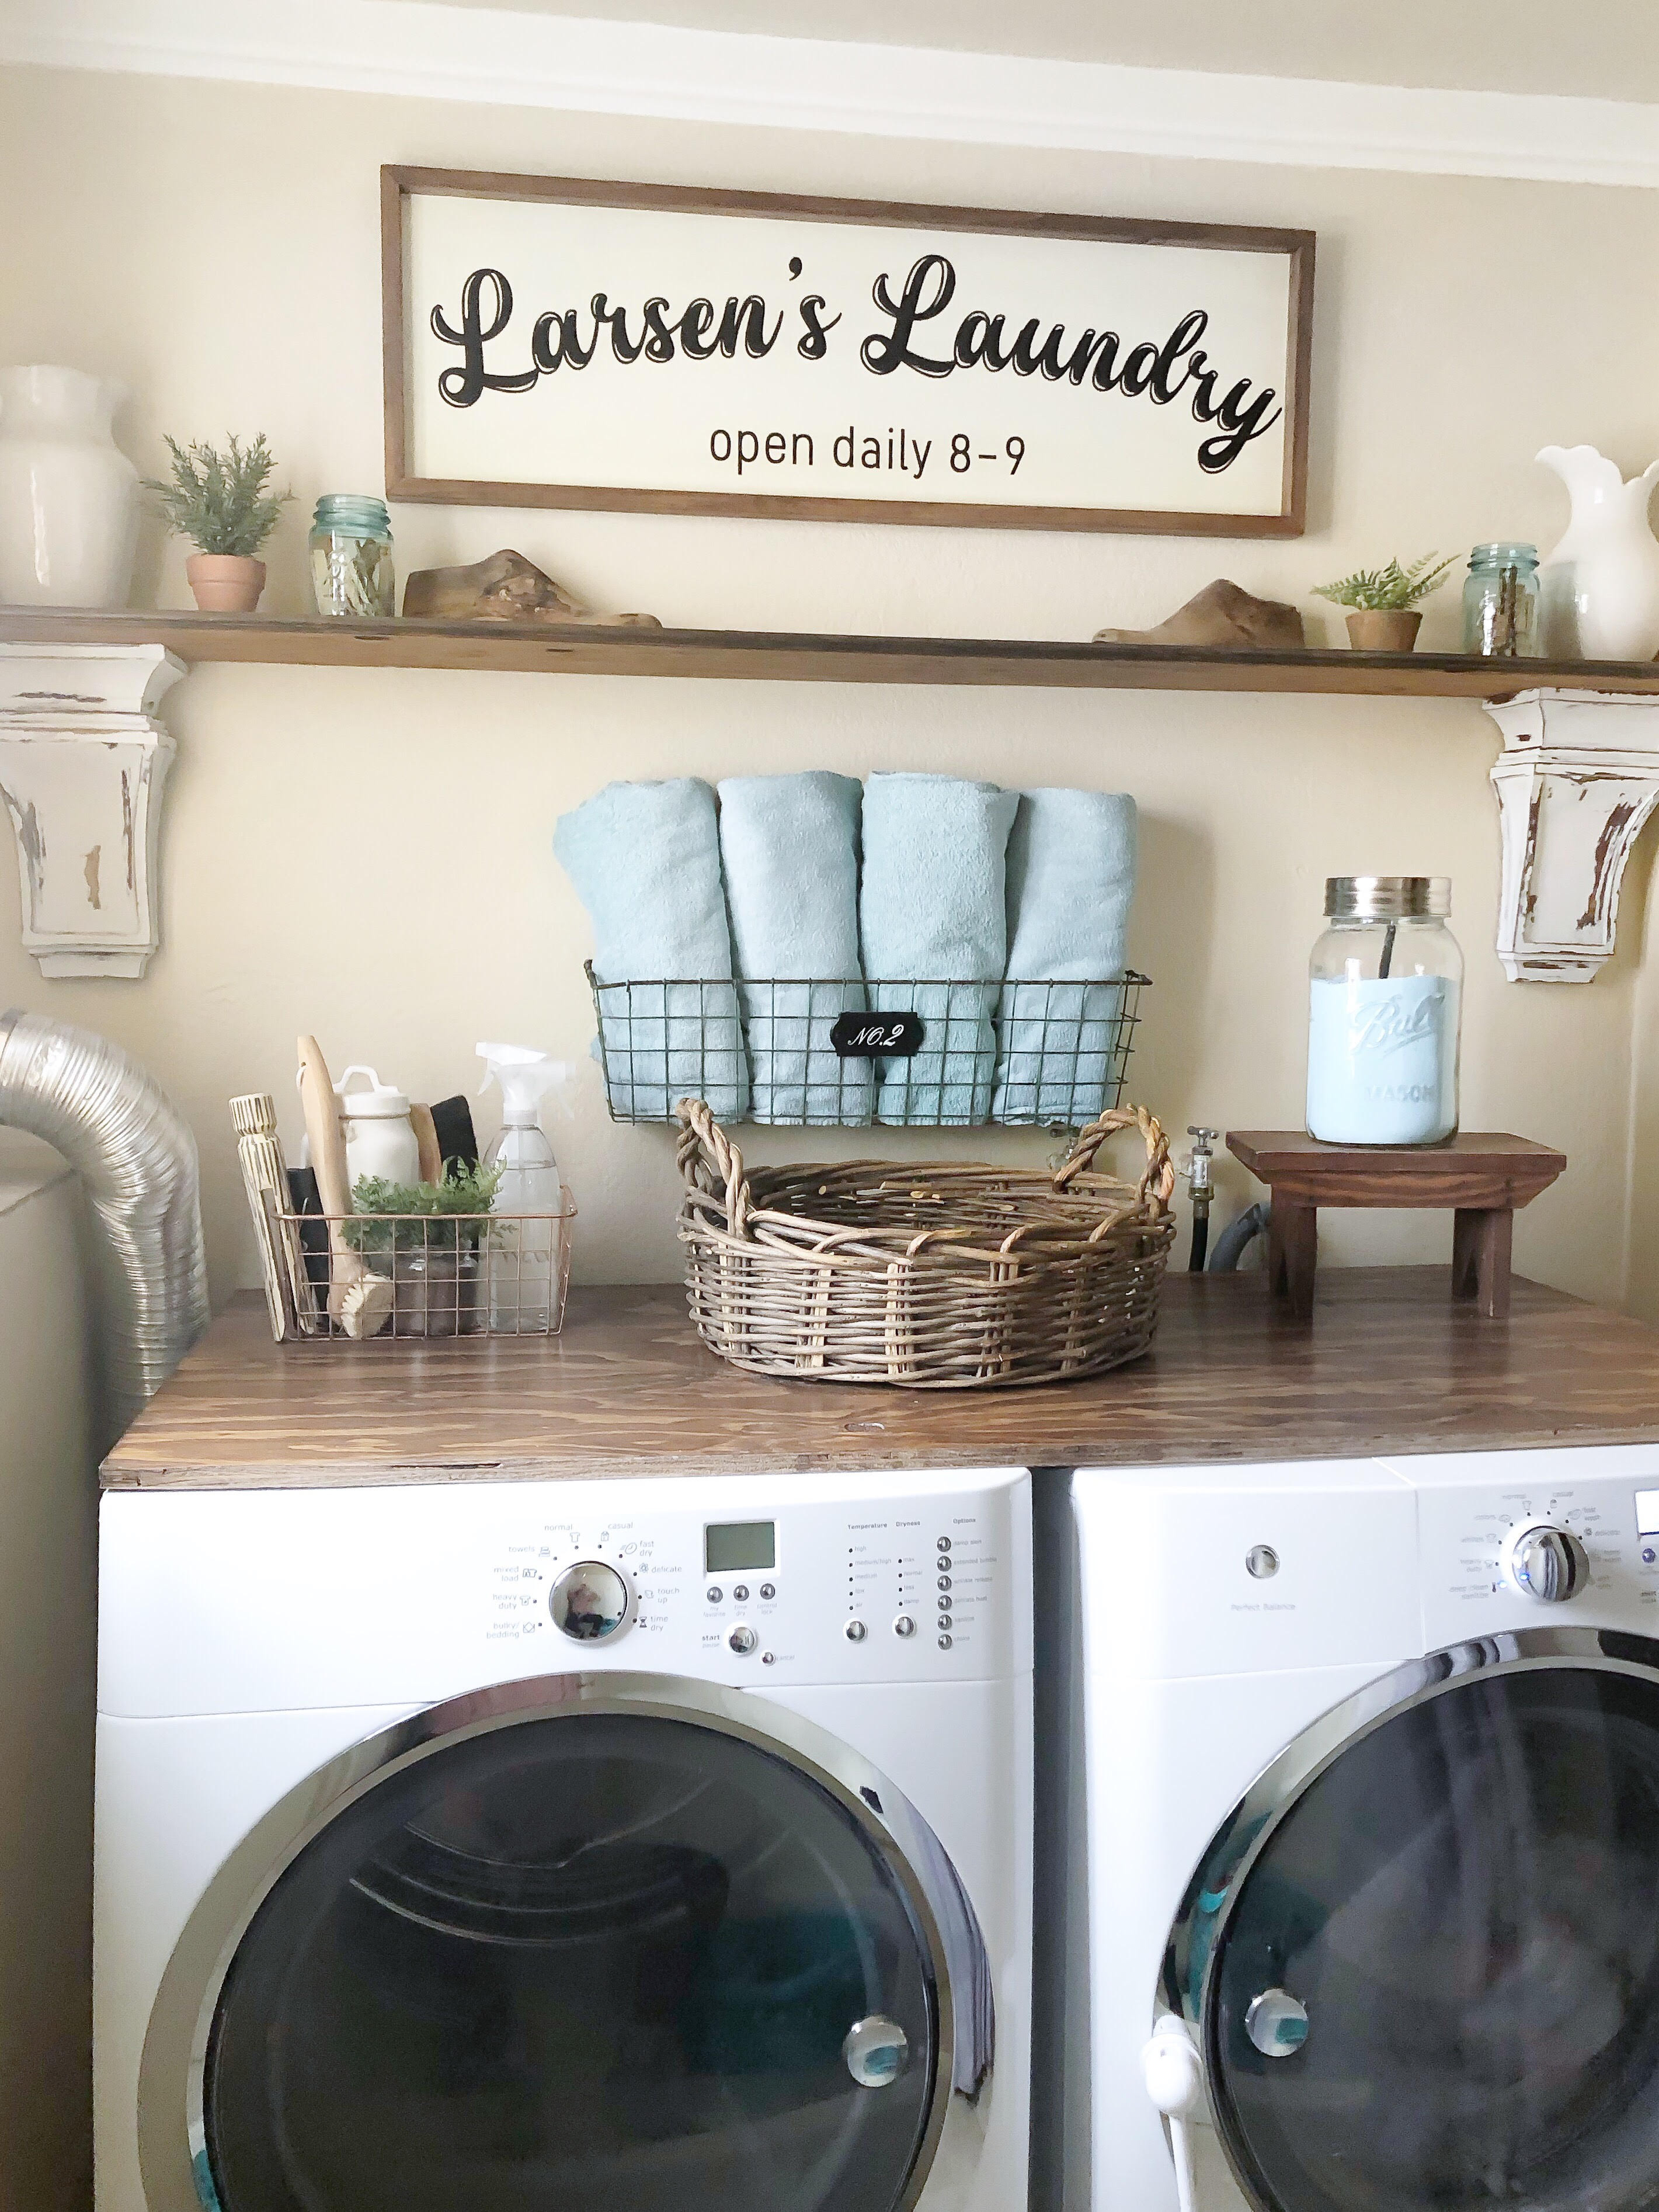 Best ideas about Laundry Room Decor . Save or Pin Laundry Room Decor and Helpful Tips Craft O Maniac Now.